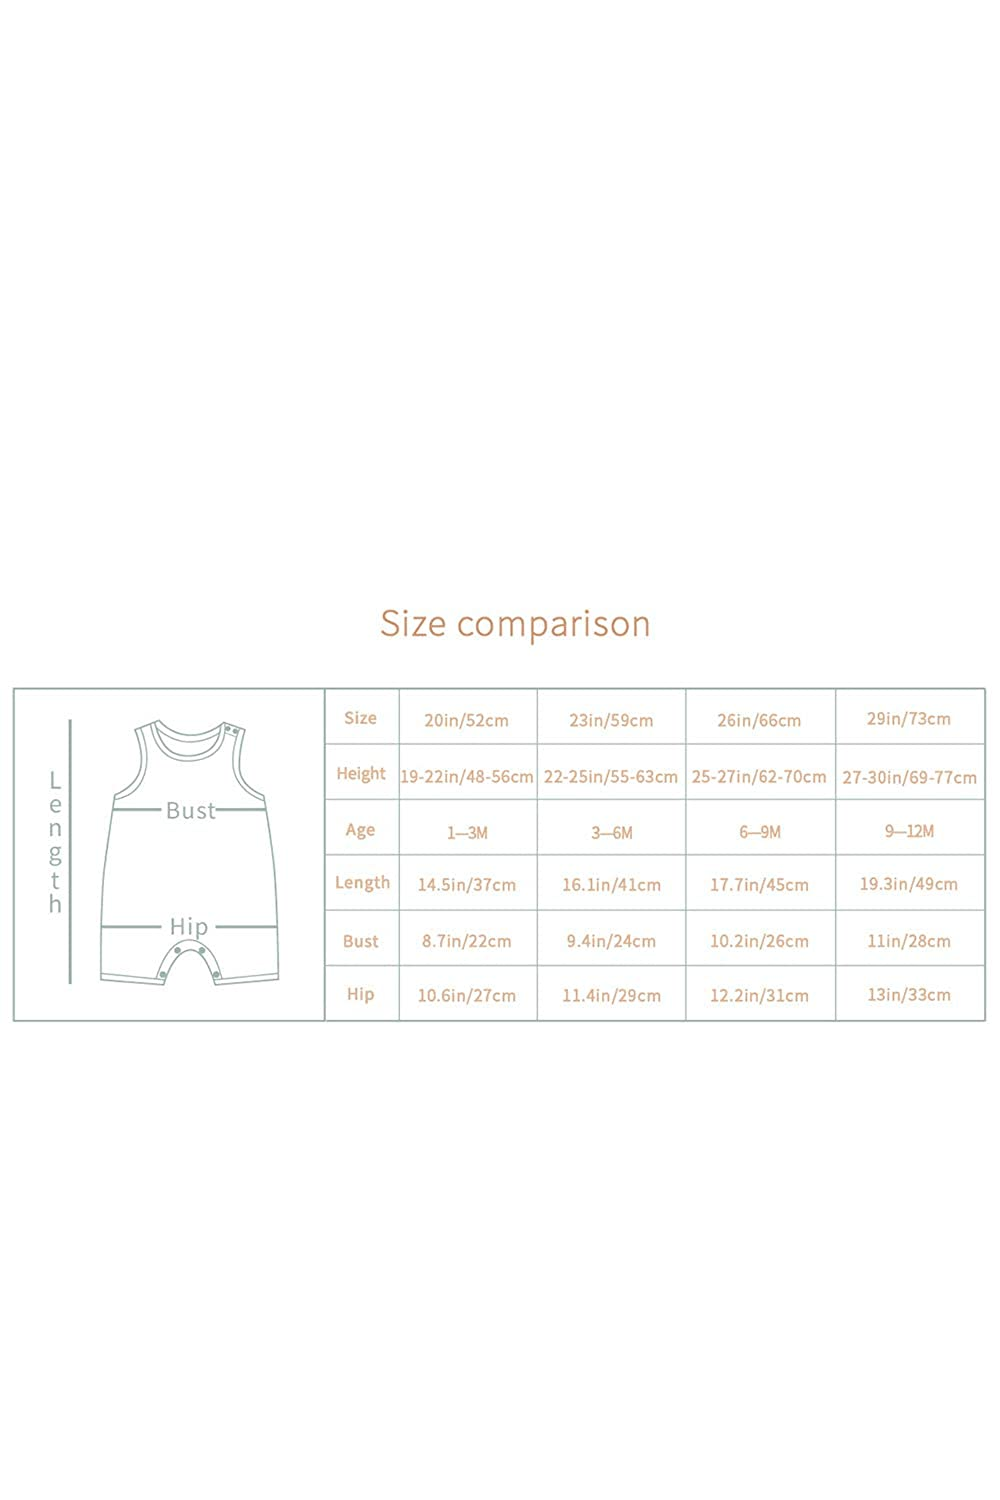 LOV ANNY Infant Toddler Baby Boys Girls Romper Sleeveless Outfit Clothes